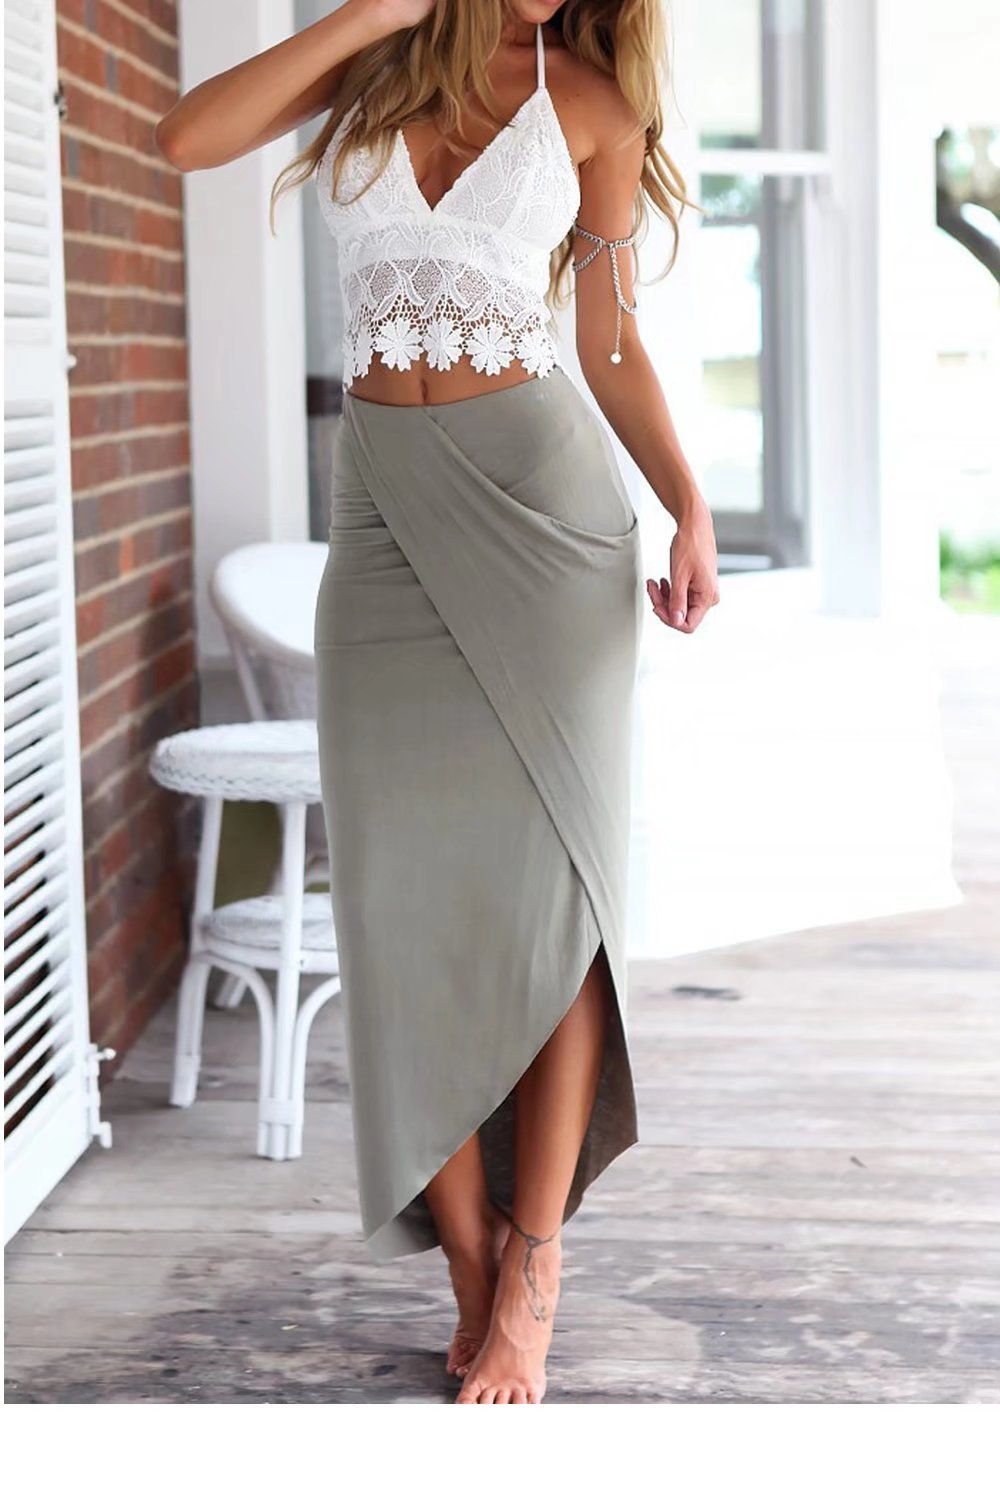 jasit Skirt Set, Women Summer Two Pieces V Neck Backless Lace Tops+Irregular Long Skirt S by jasit (Image #1)